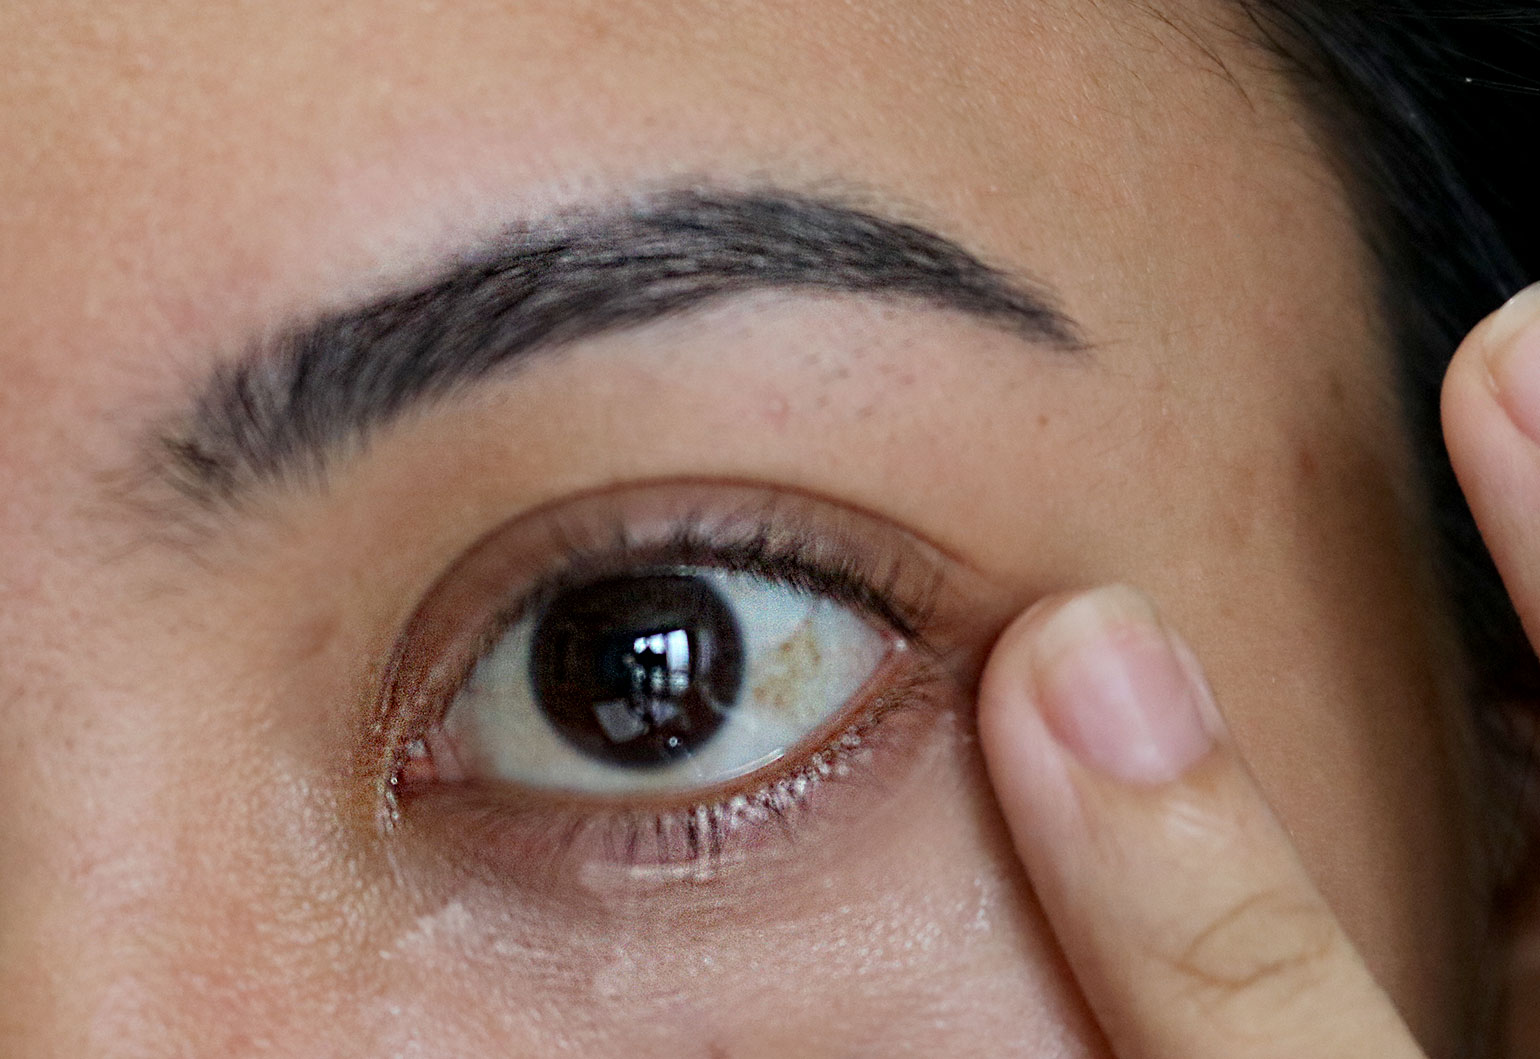 5 Olay Eyes Review Photos Before and After - She Sings Beauty by Gen-zel Habab